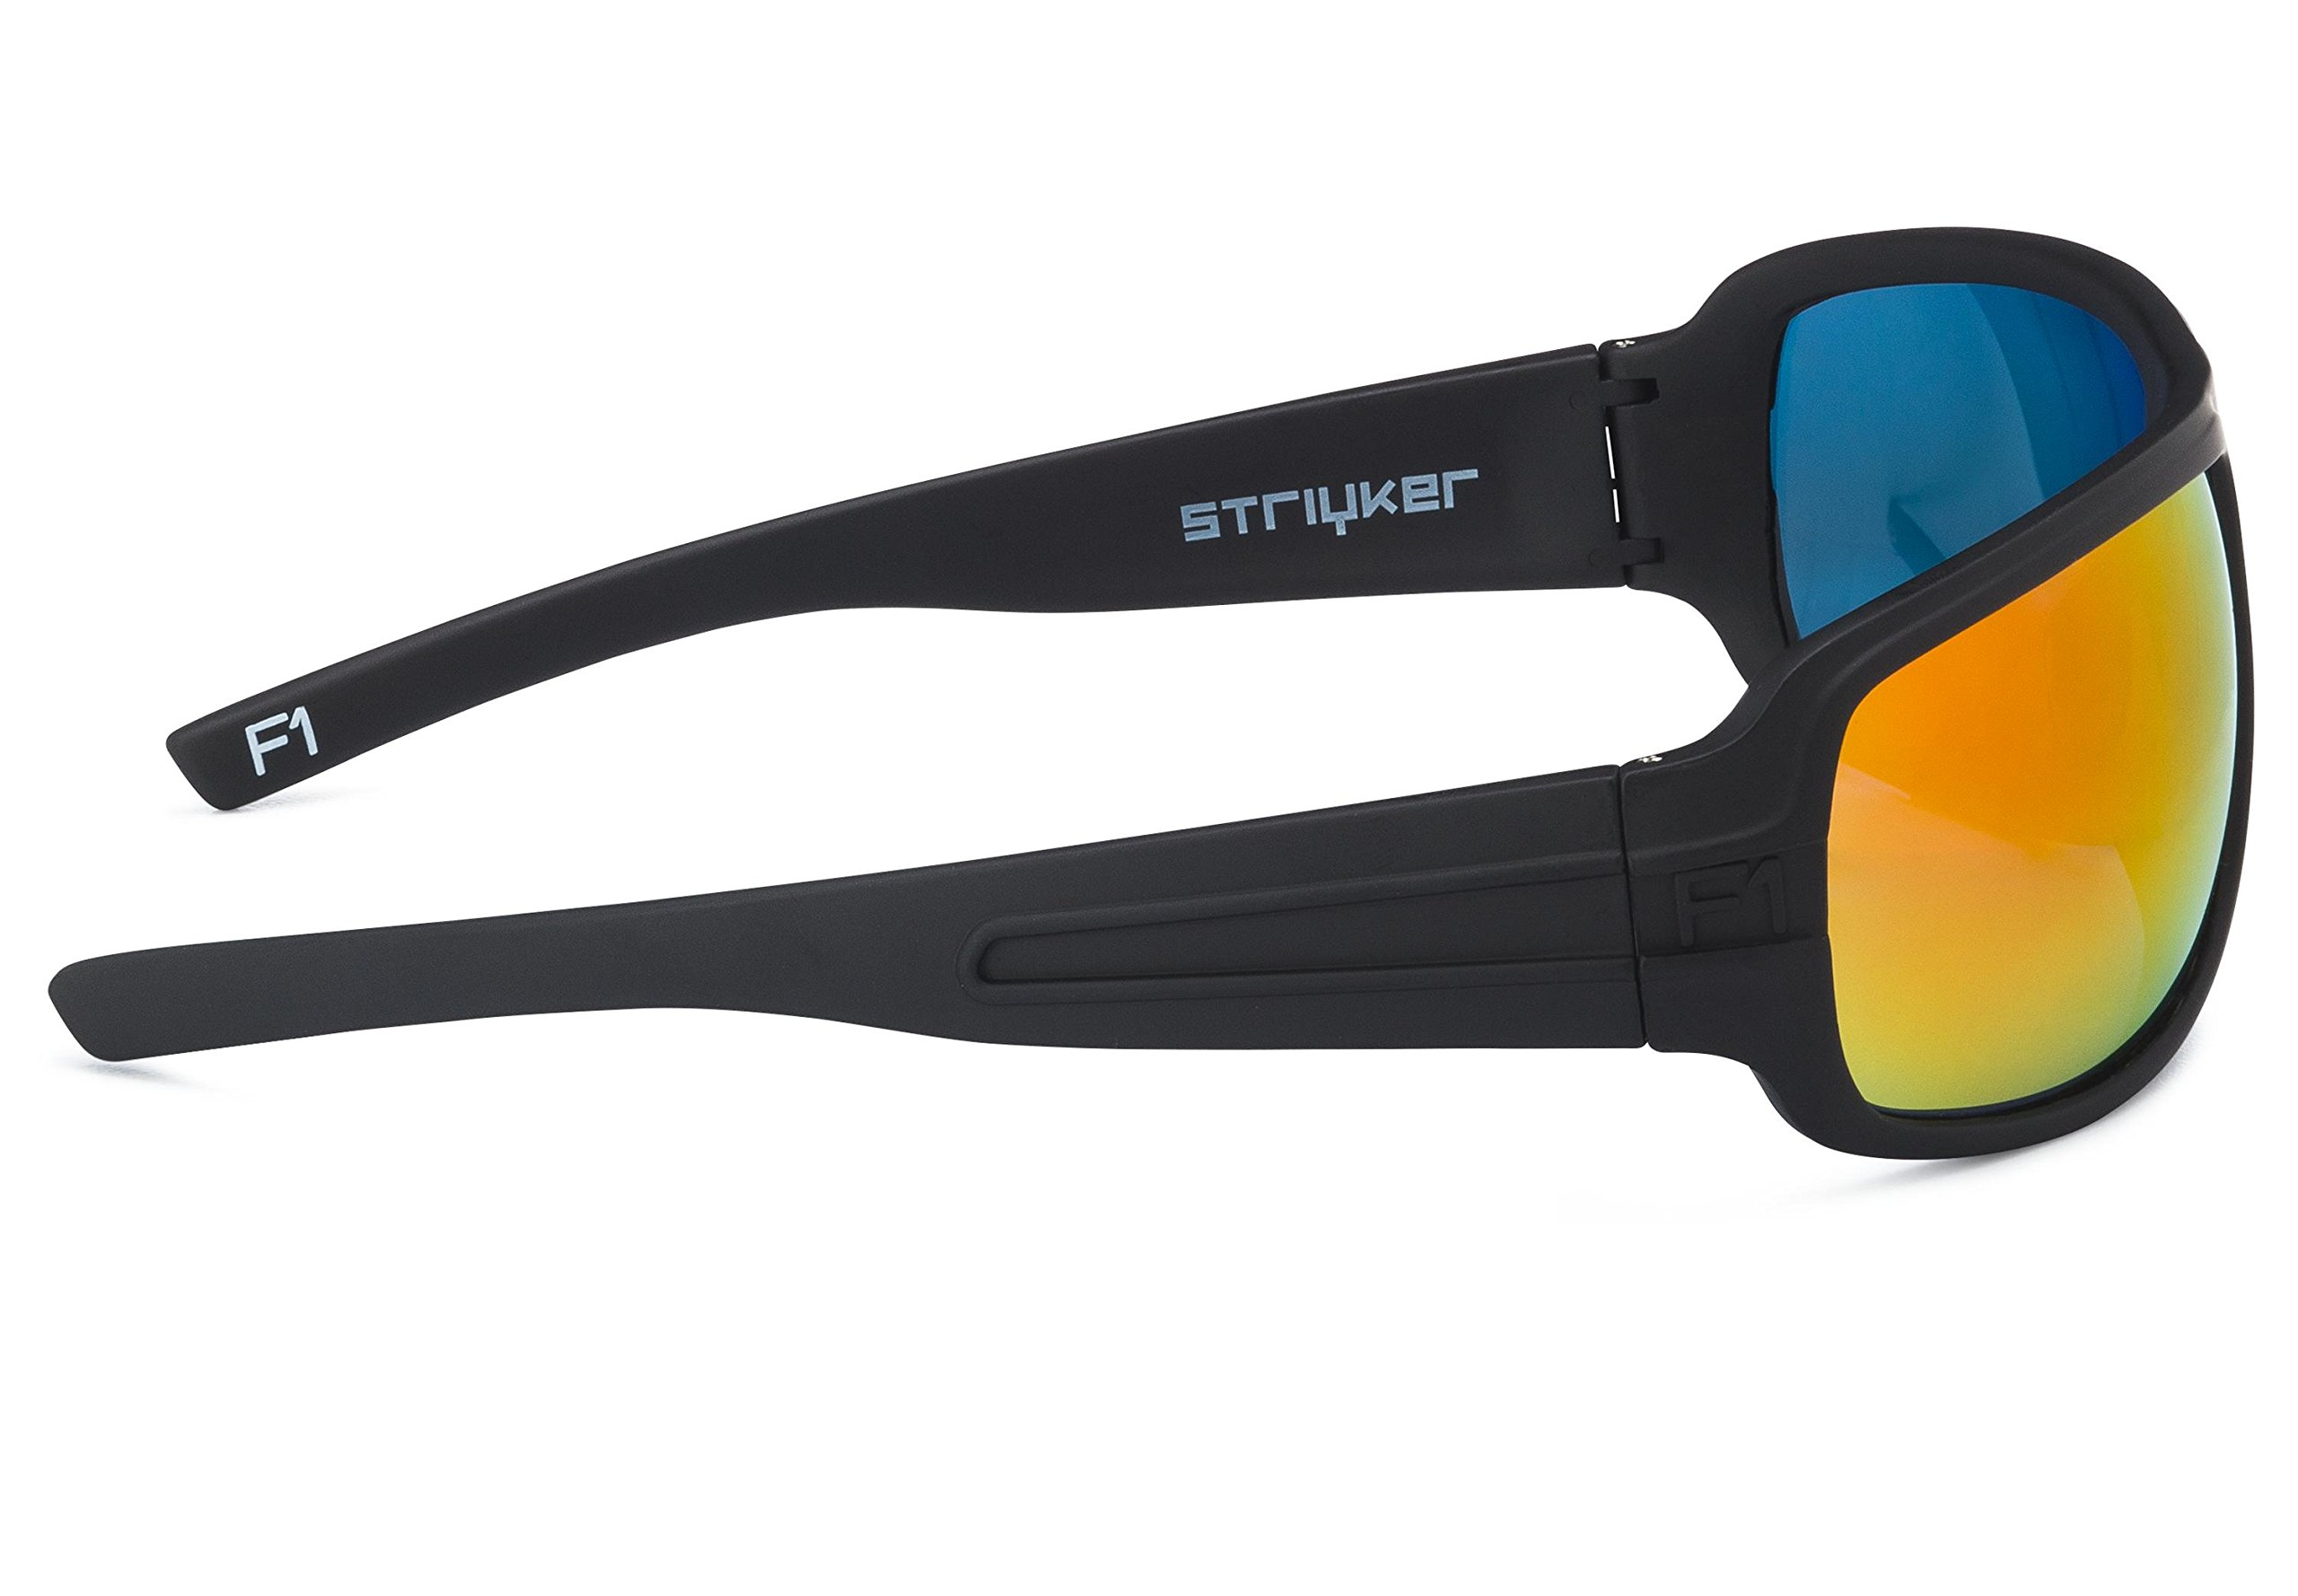 STRIYKER F1 Polycarbonate Polarized Sunglasses -100% UV 400 Protection- TR90 Universal Fit Memory Frame- Ultra Lightweight - Extremely Durable (Matte Black (Red REVO)) by STRIYKER Premium Eyewear (Image #3)